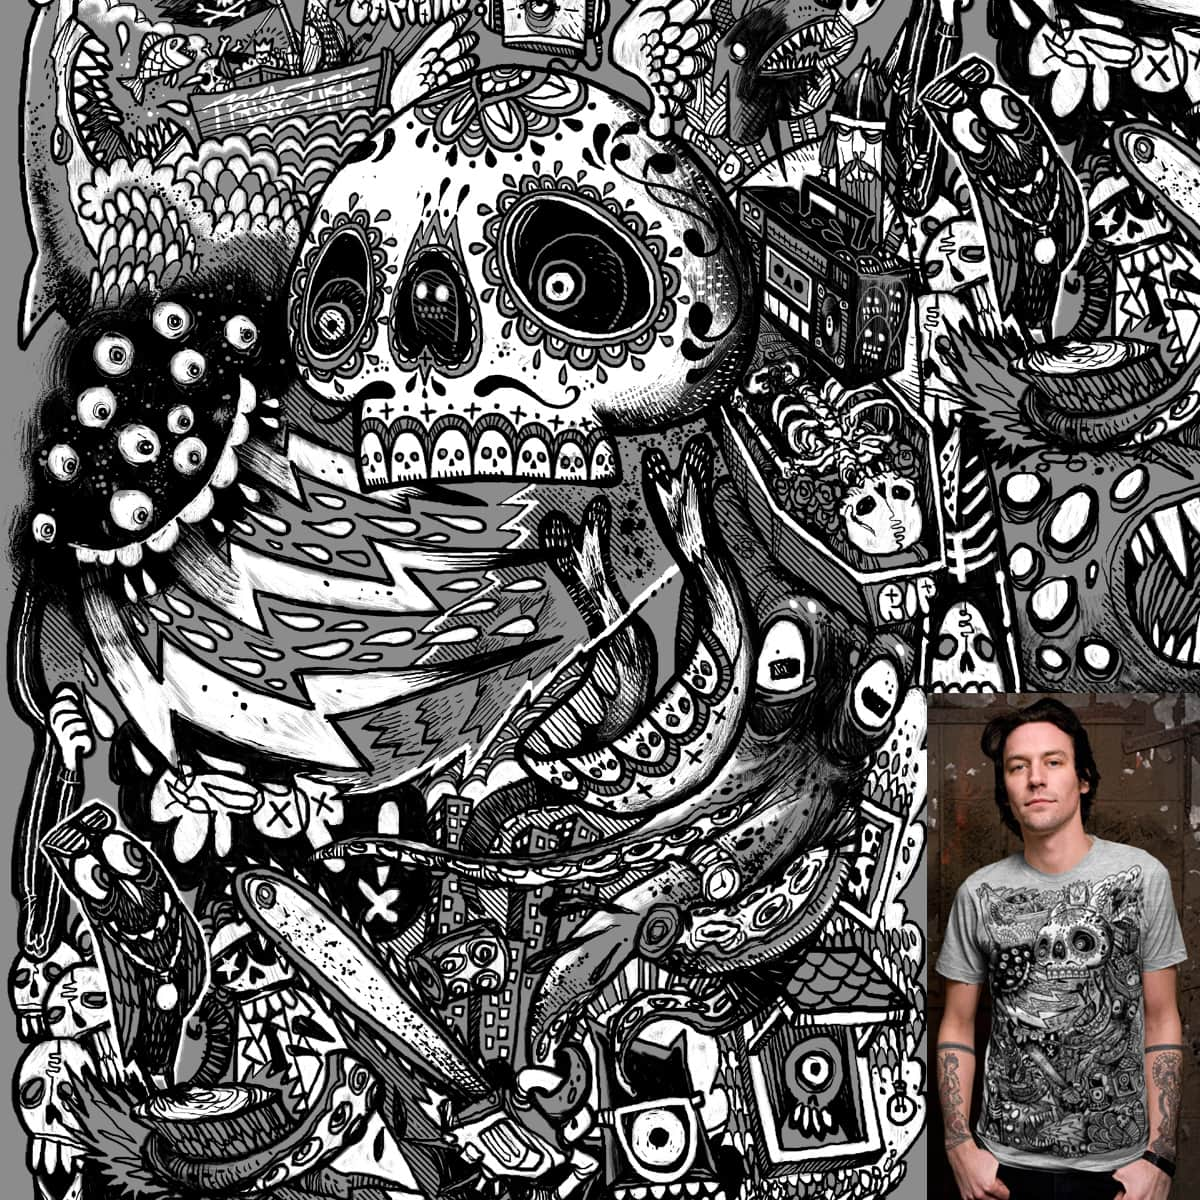 Chaos by Eyesore427 on Threadless